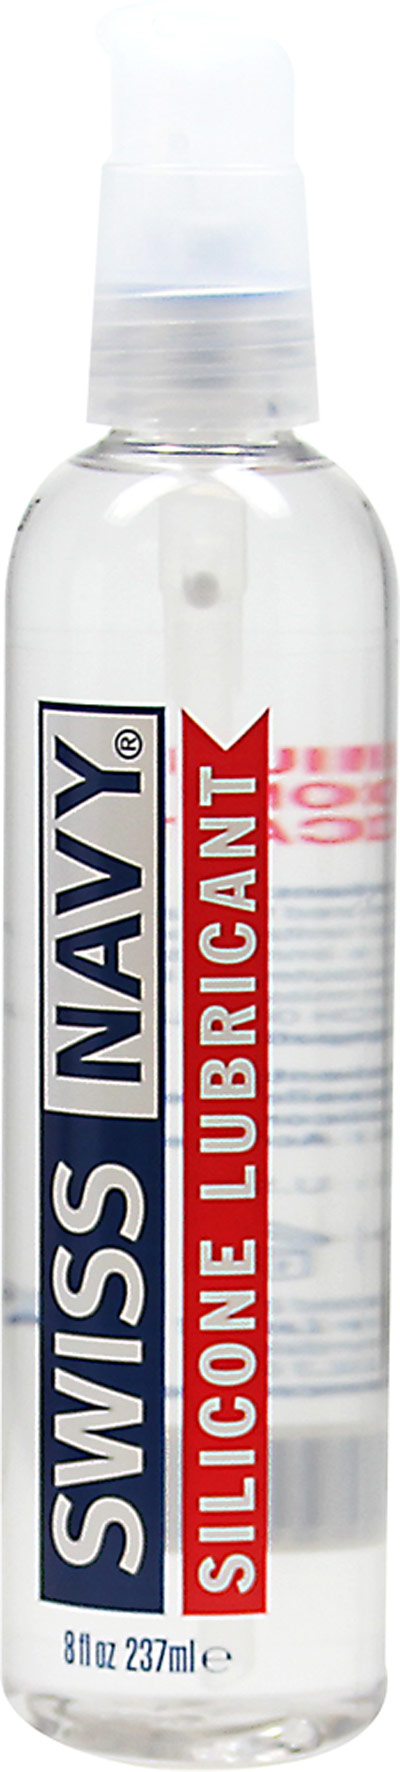 MD Science Swiss Navy Silicone Lubricant-8 oz Lubricant 033025